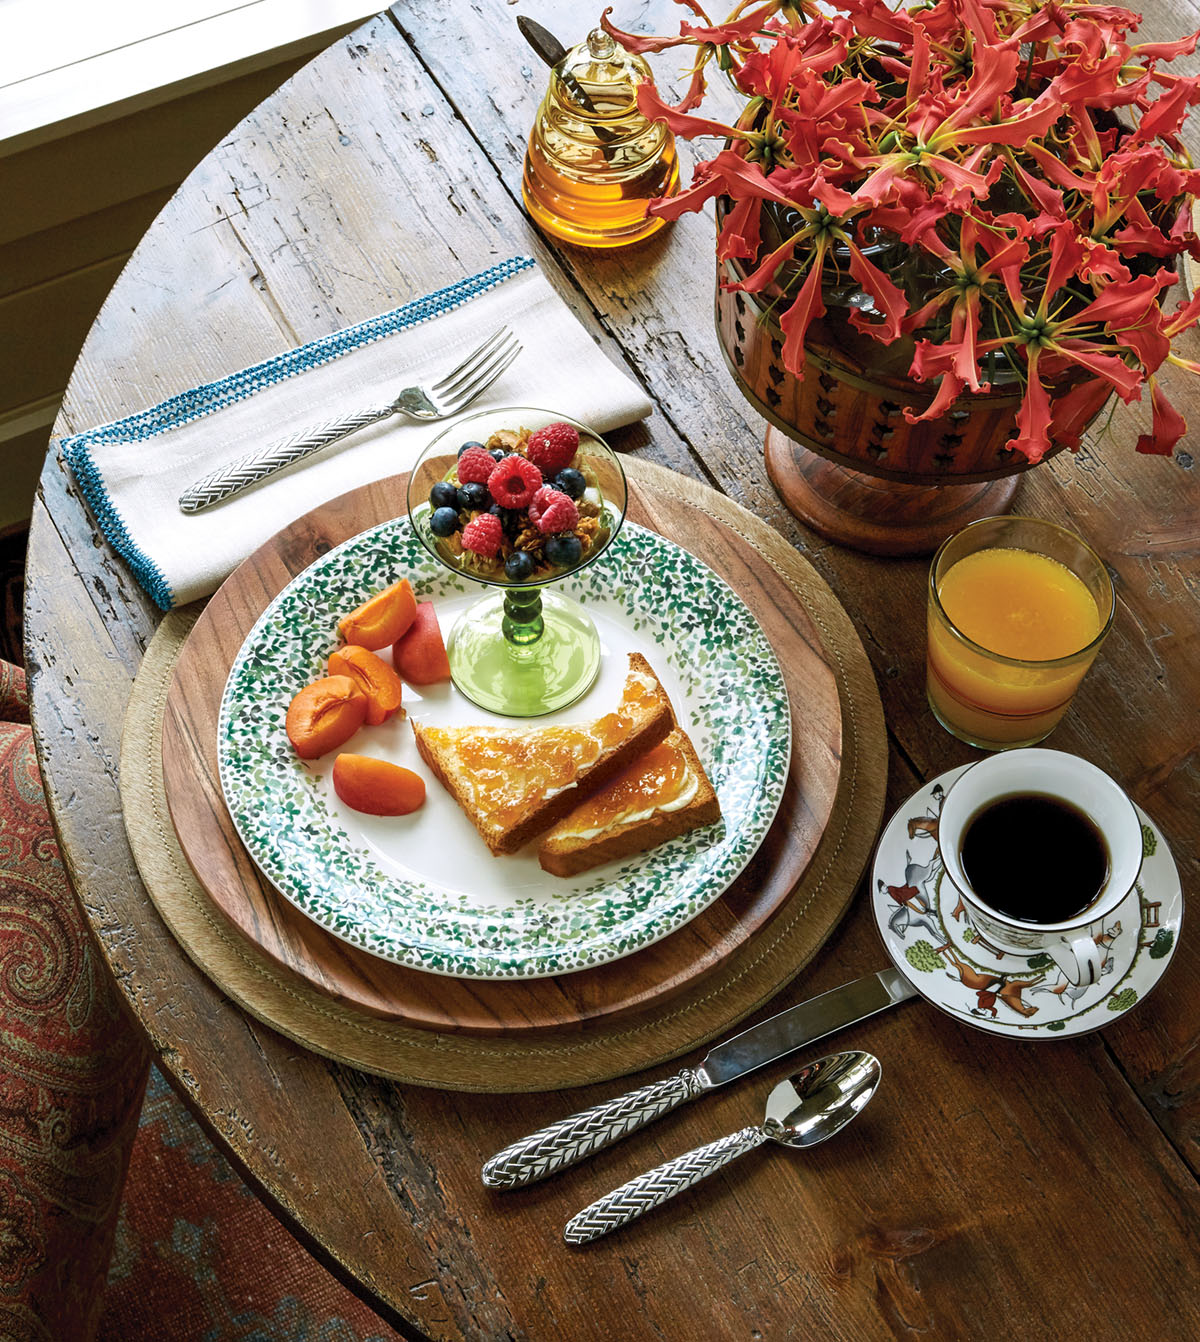 breakfast of toast, berries and granola, and sliced peaches set on a rustic wooden table